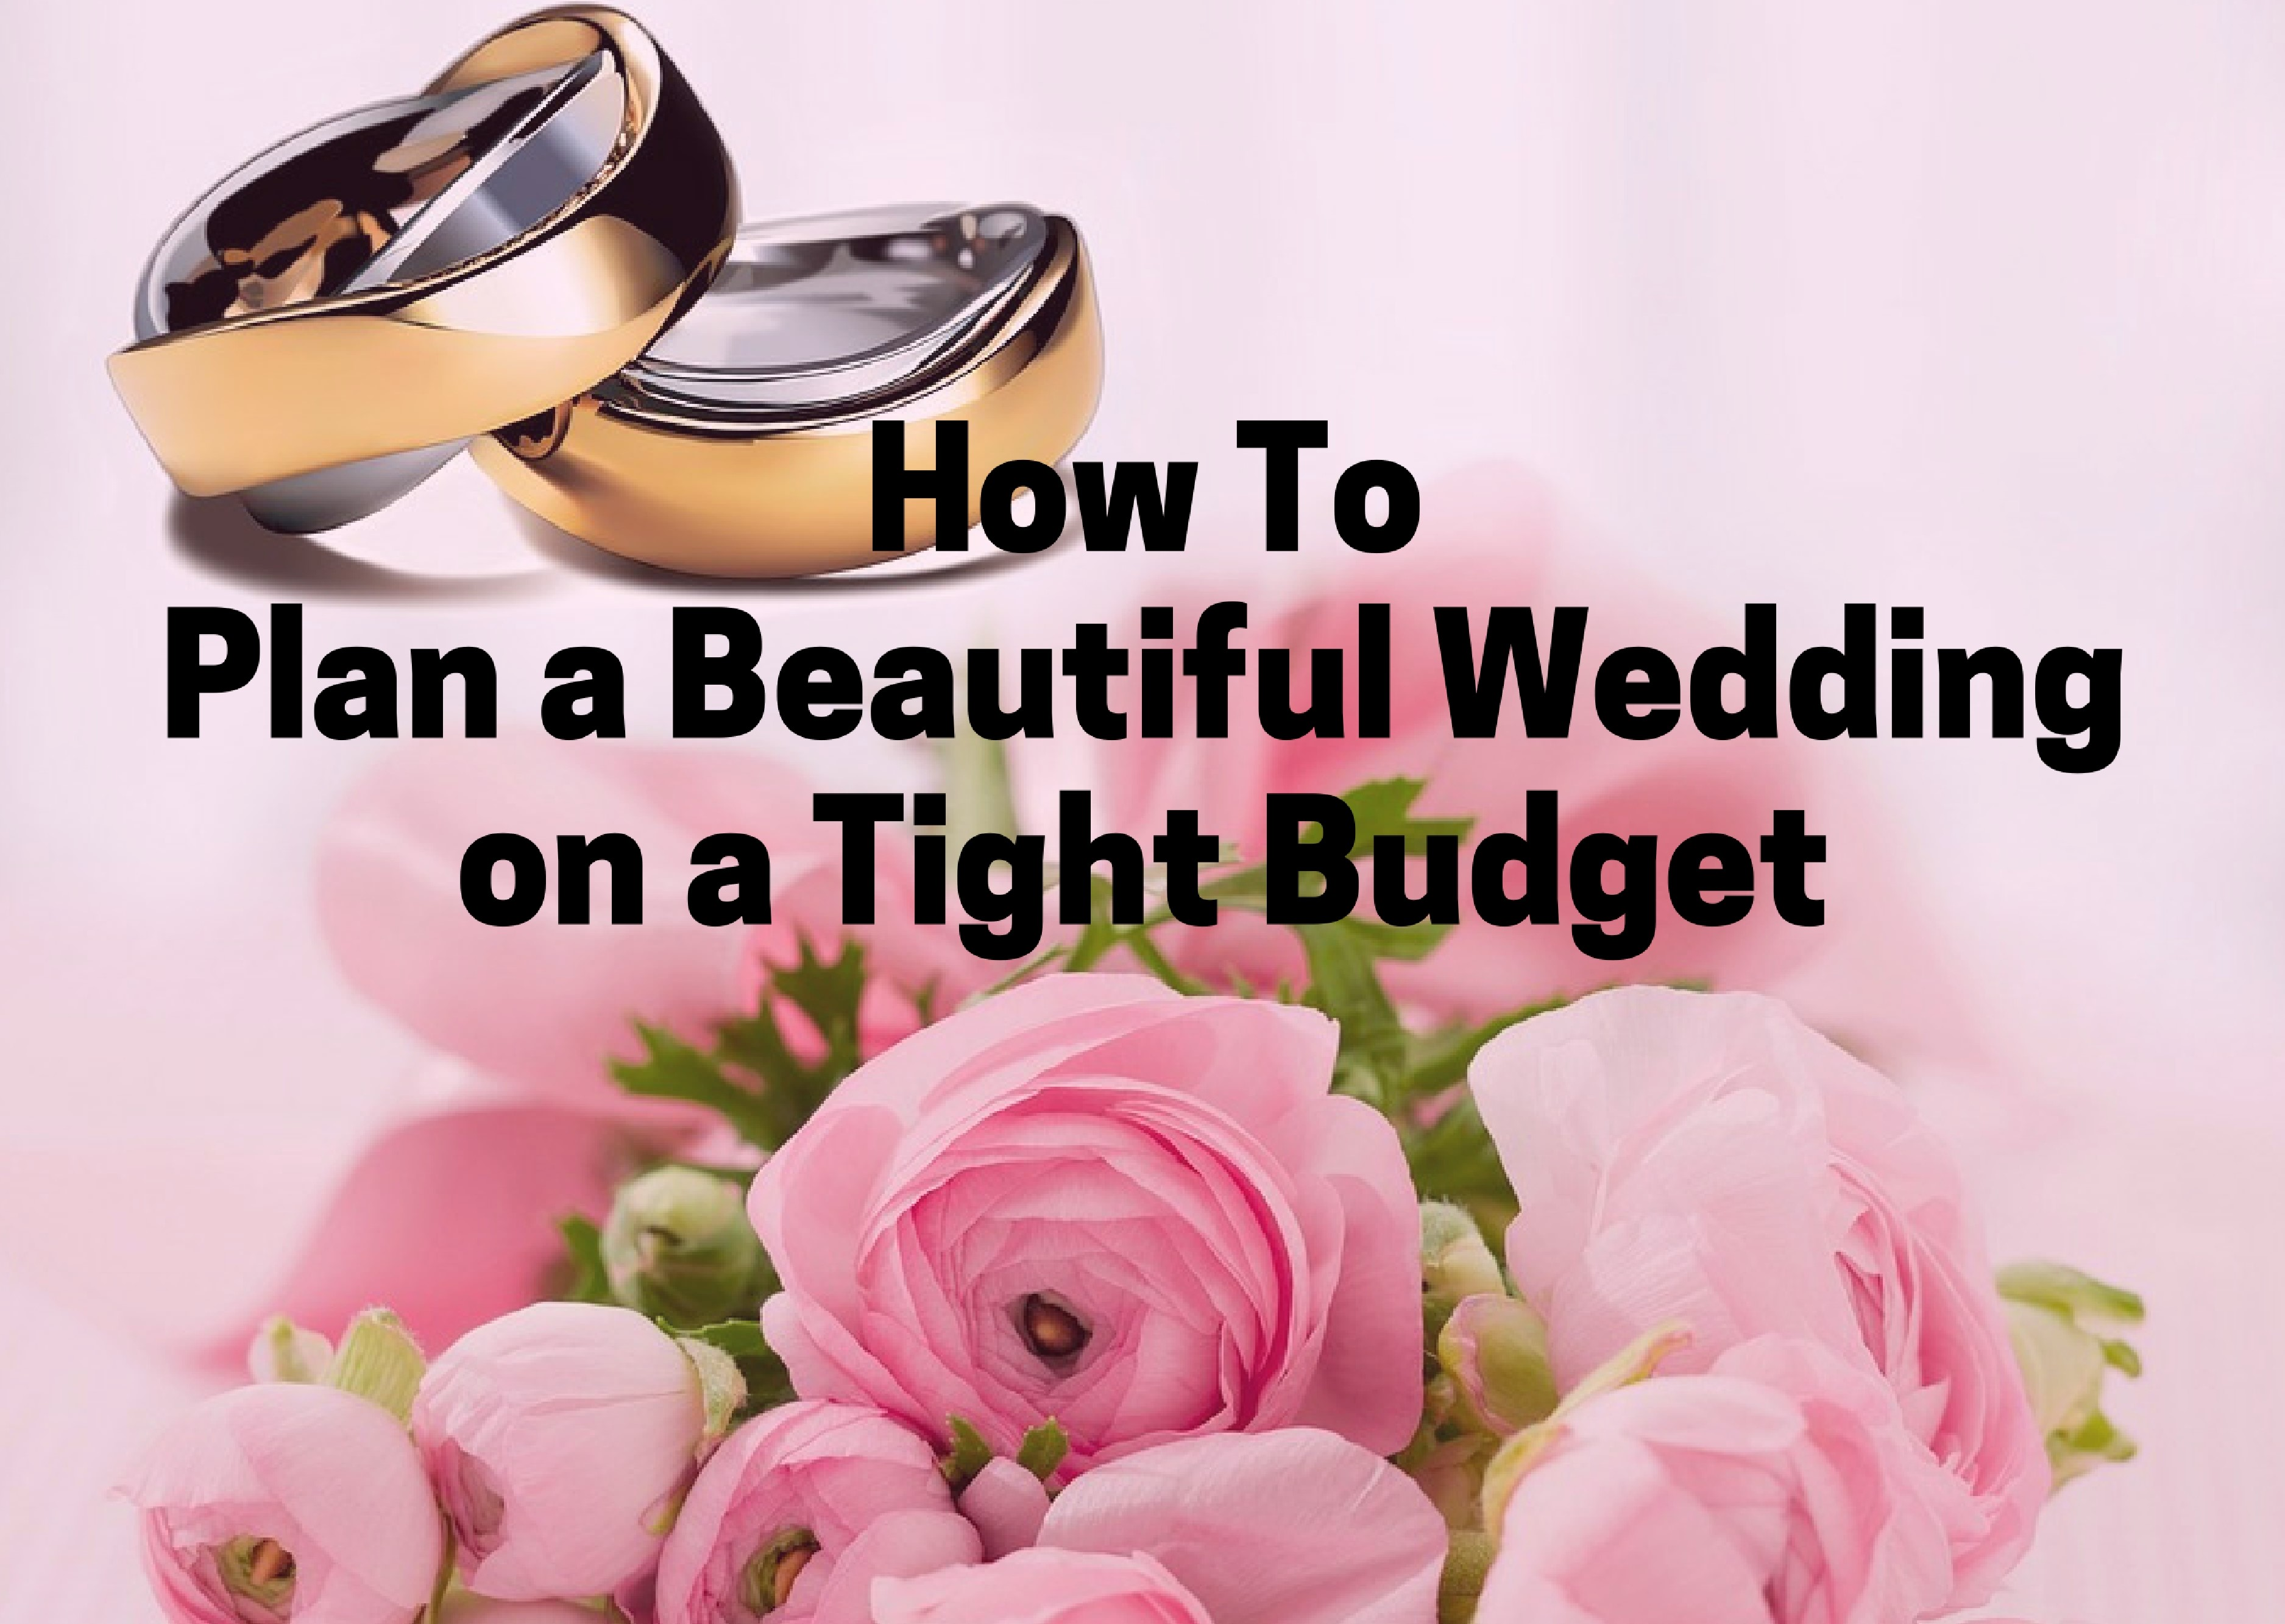 How To Plan A Beautiful Wedding On A Tight Budget